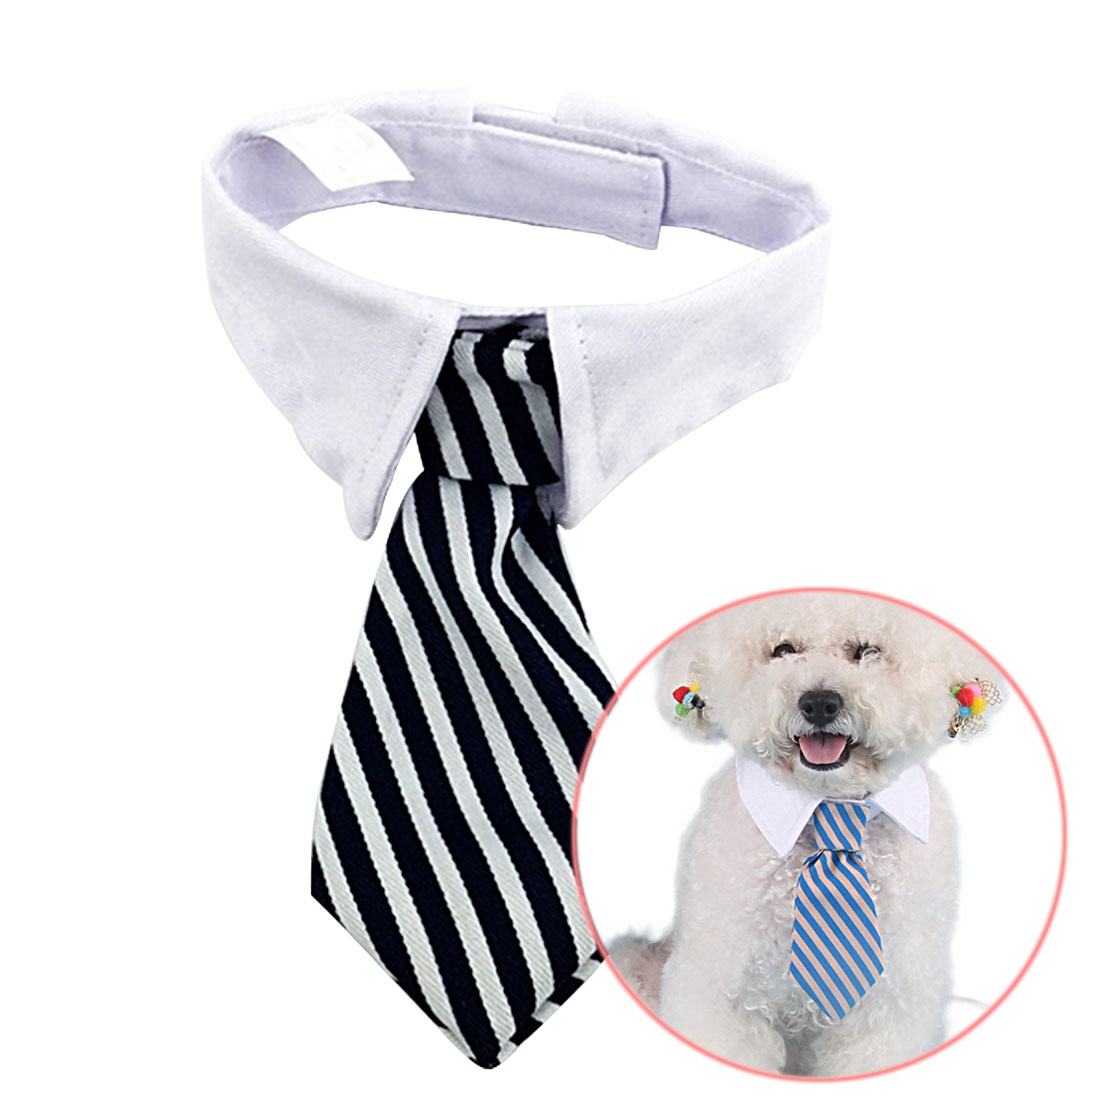 Pet Accessories S/L Pet Ties Stripe Small Cotton Pet Dog Puppy Necktie Adjustable Bow Tie Grooming for Christmas Decor